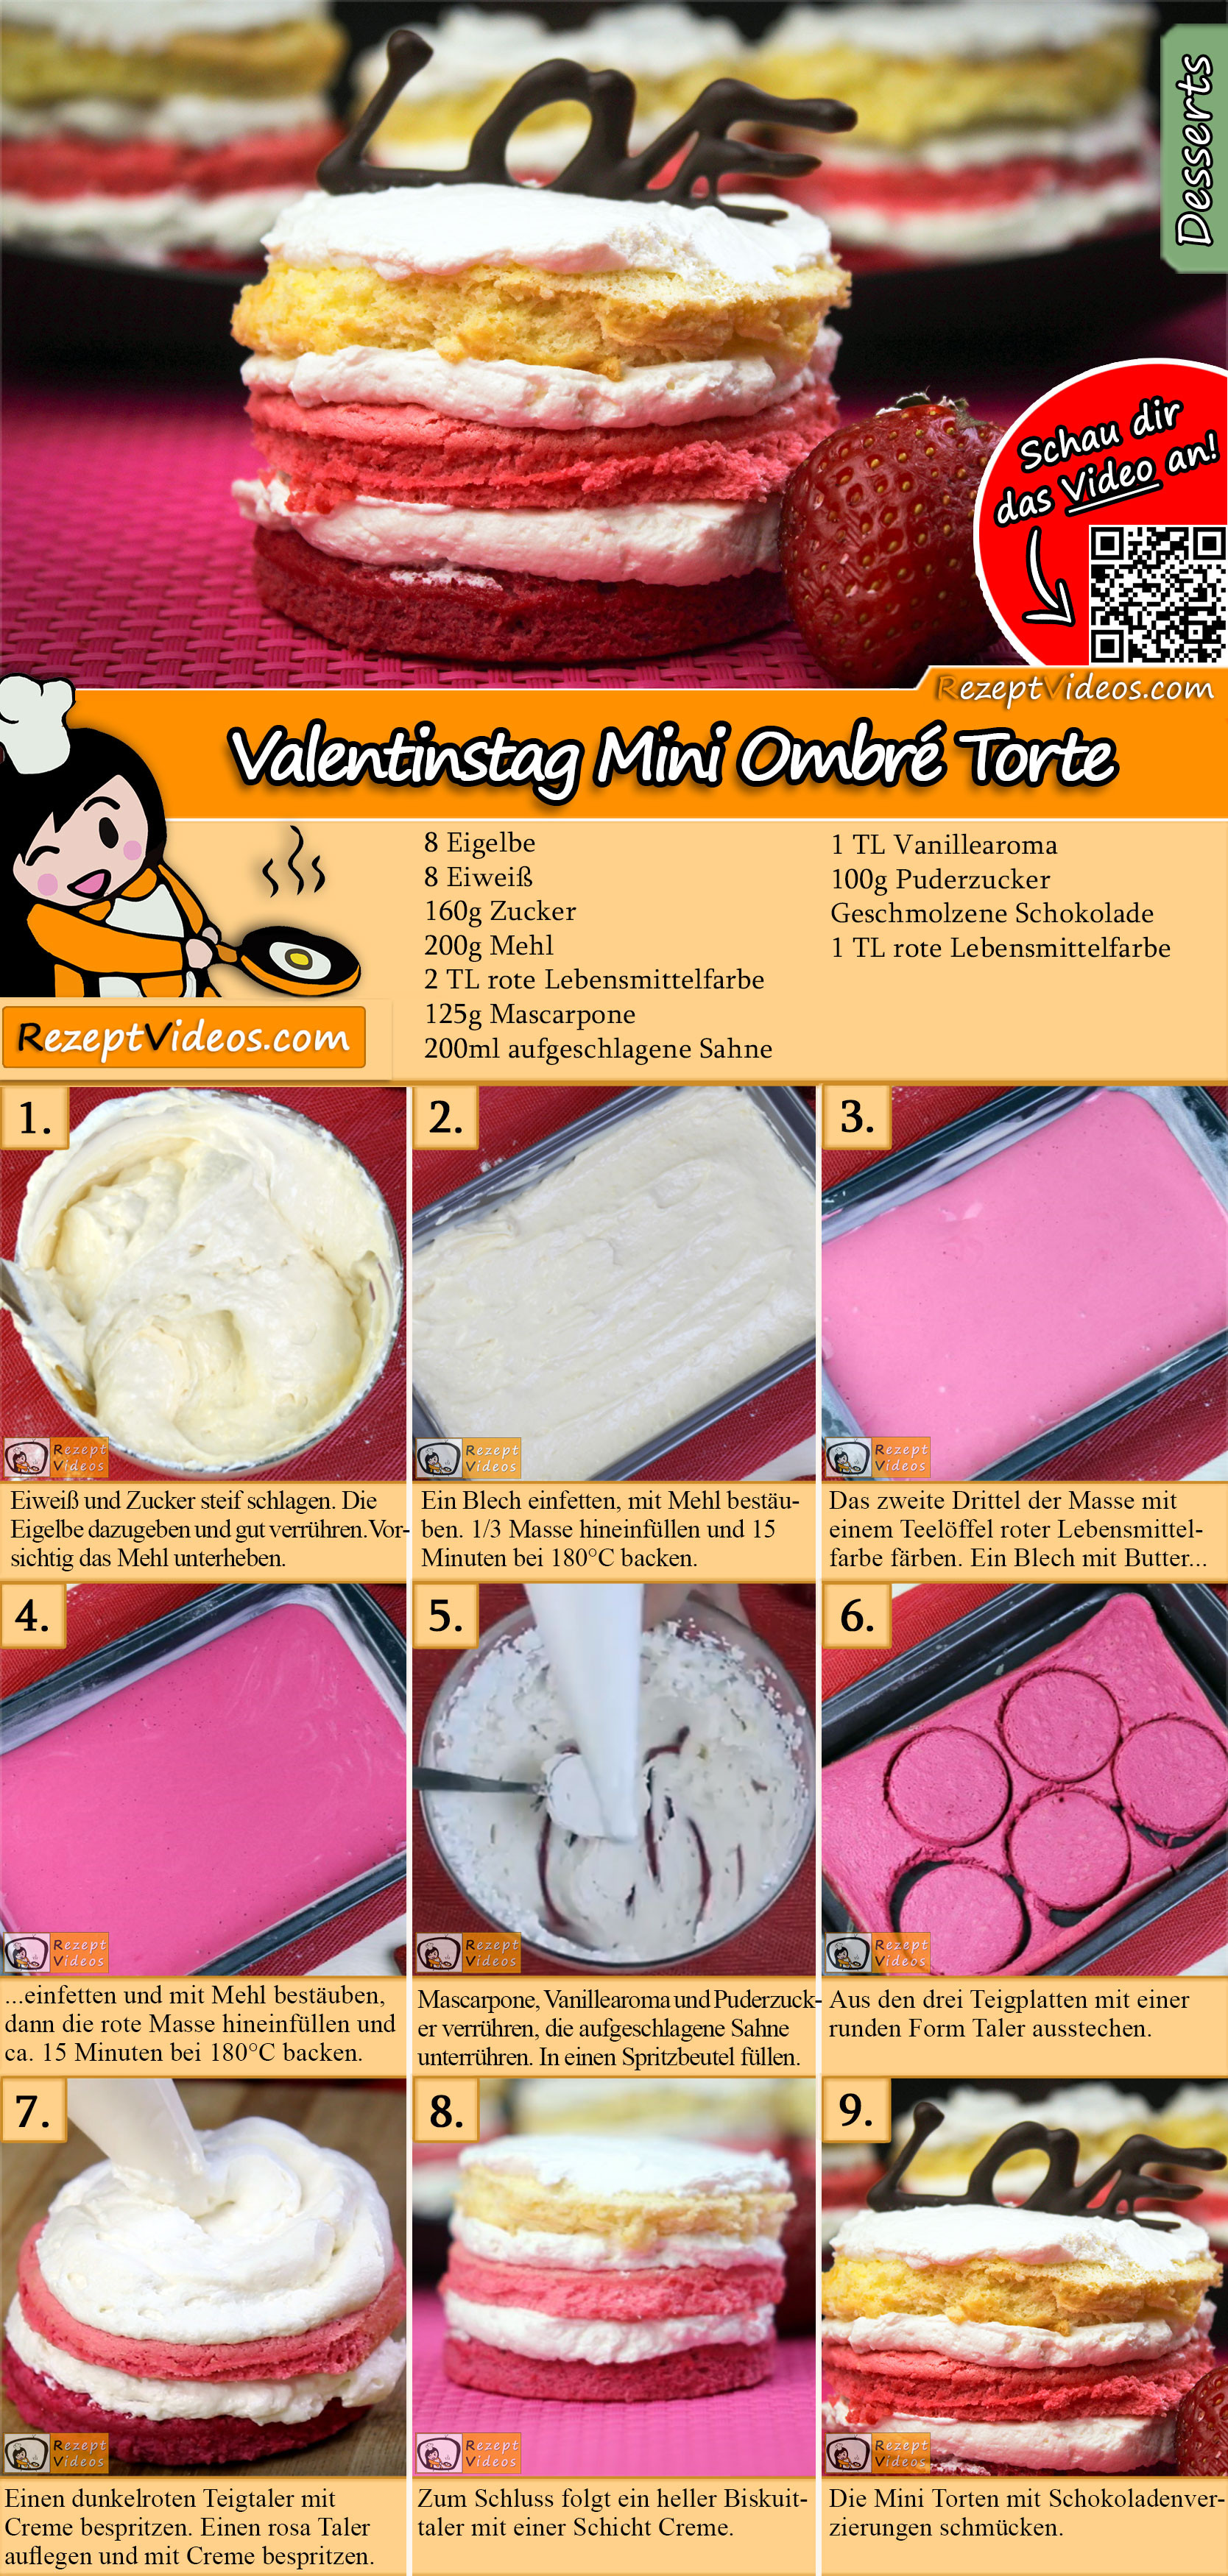 Valentinstag Mini Ombré Torte Rezept mit Video